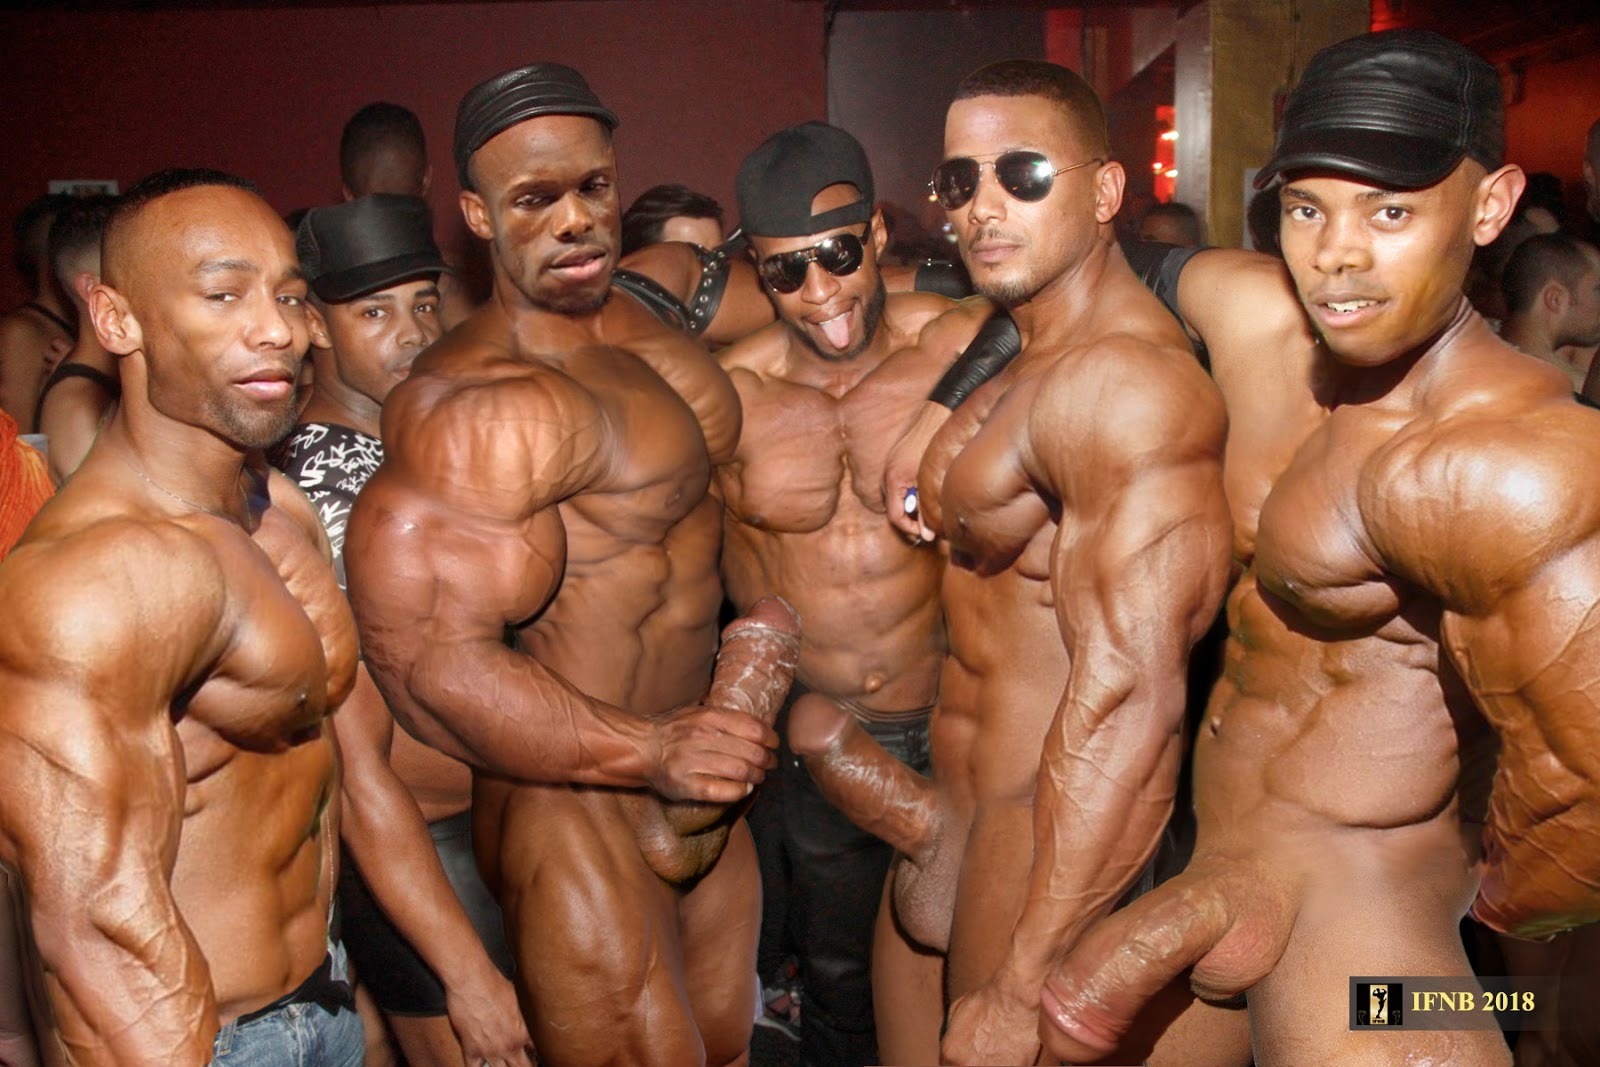 The Ifnb Report Massive Muscle And Cock Blog November 2018-3597